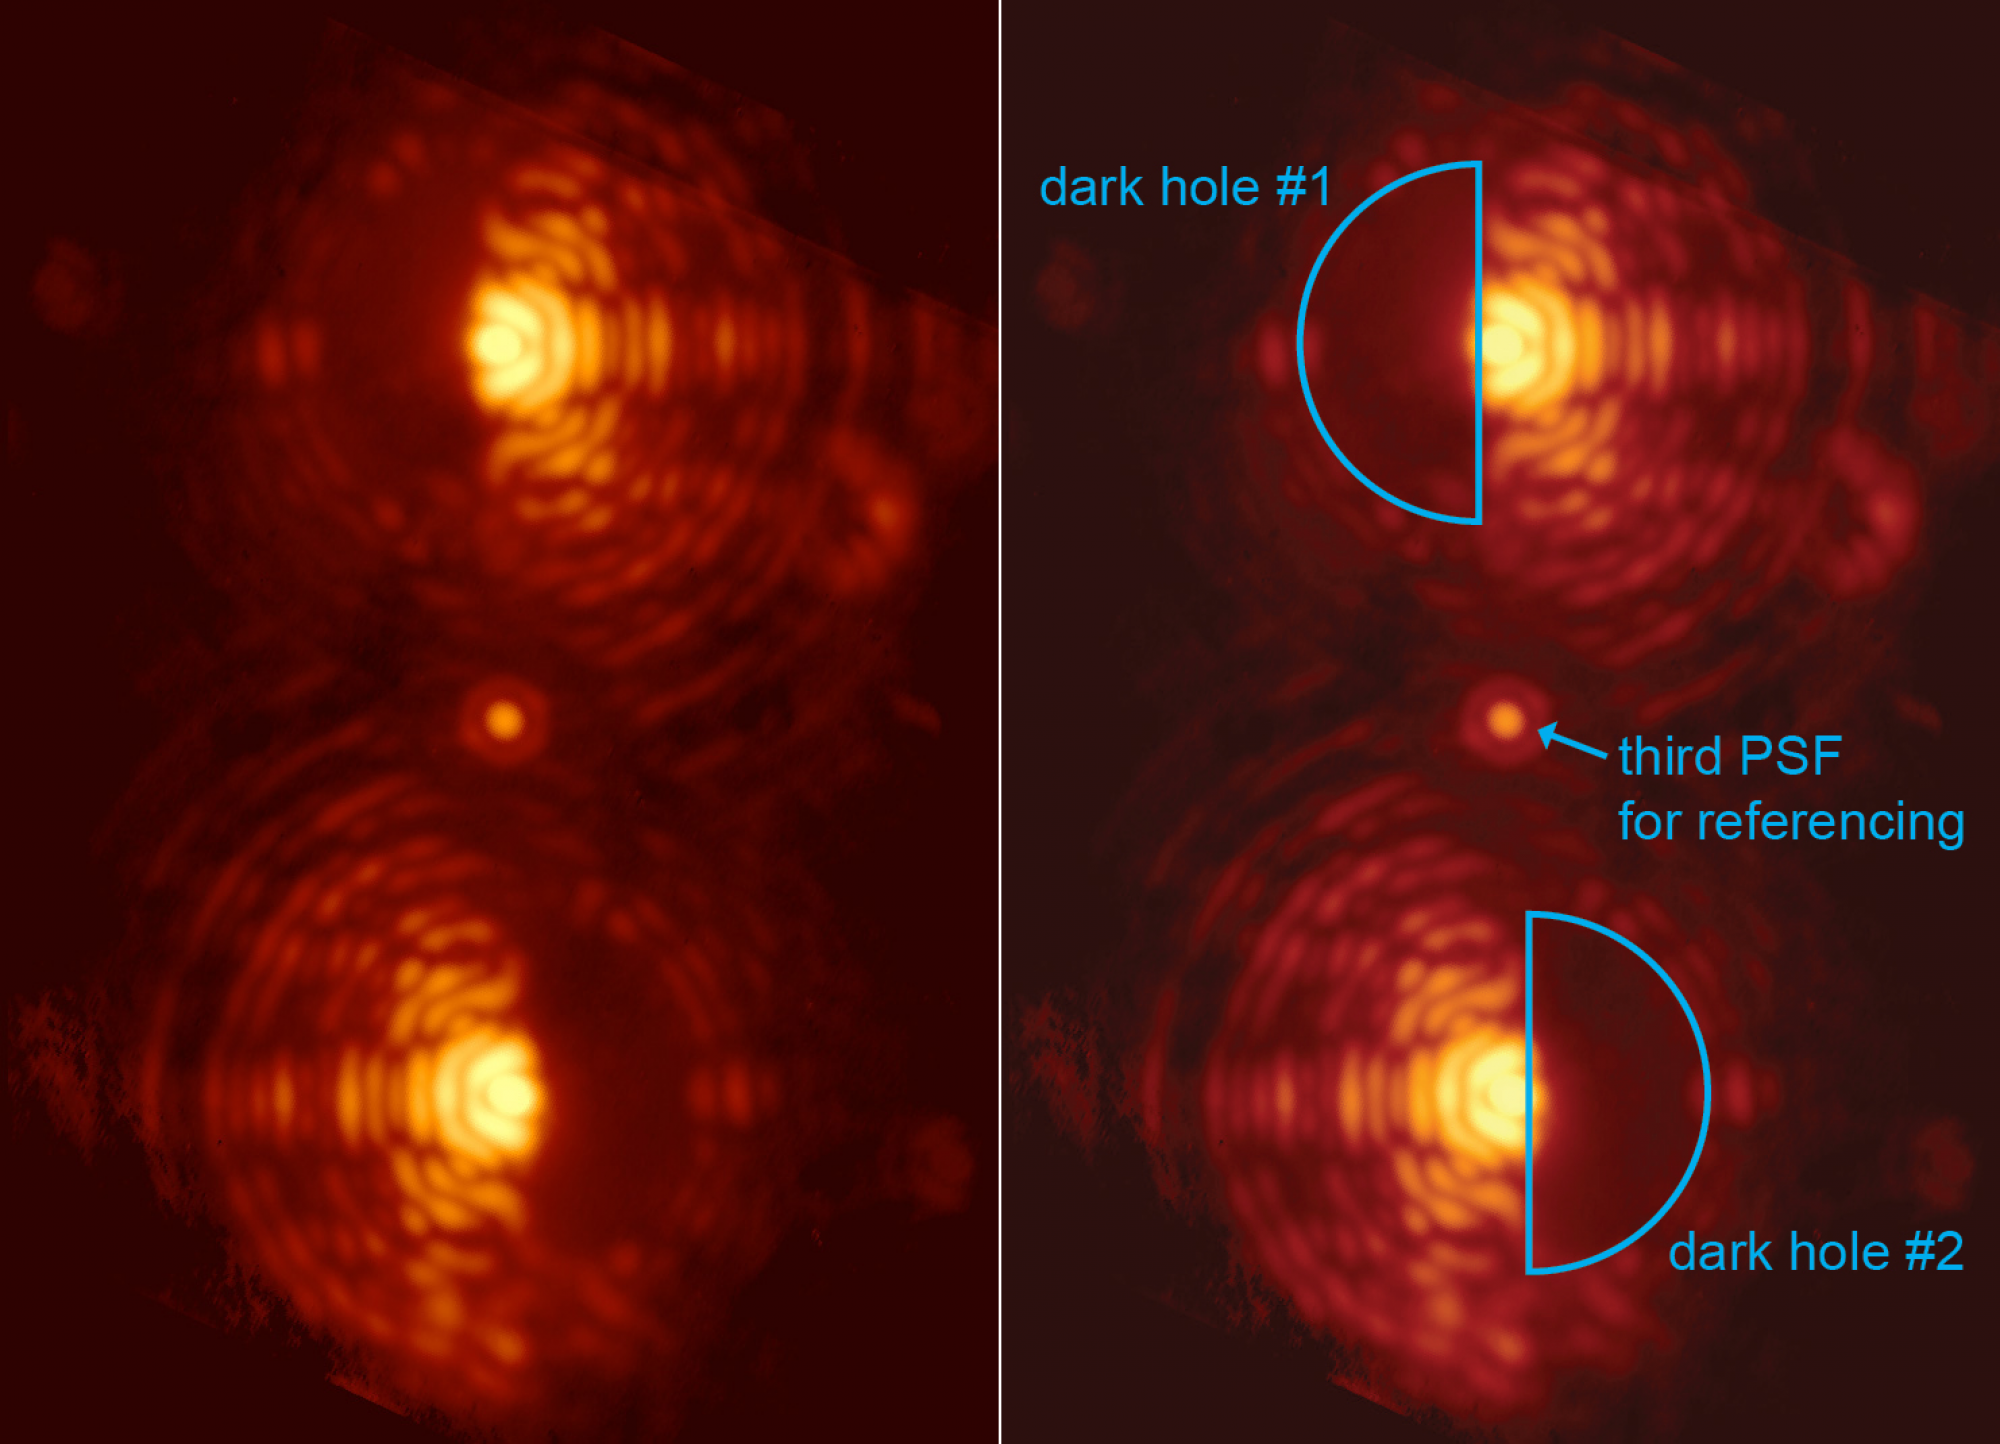 Double image of the star Eta Crucis taken through the vector-APP coronagraph installed at MagAO. The two main images of the star exhibit D-shaped dark holes on complementary sides. In this way, the whole region around the star can be scrutinized for plane